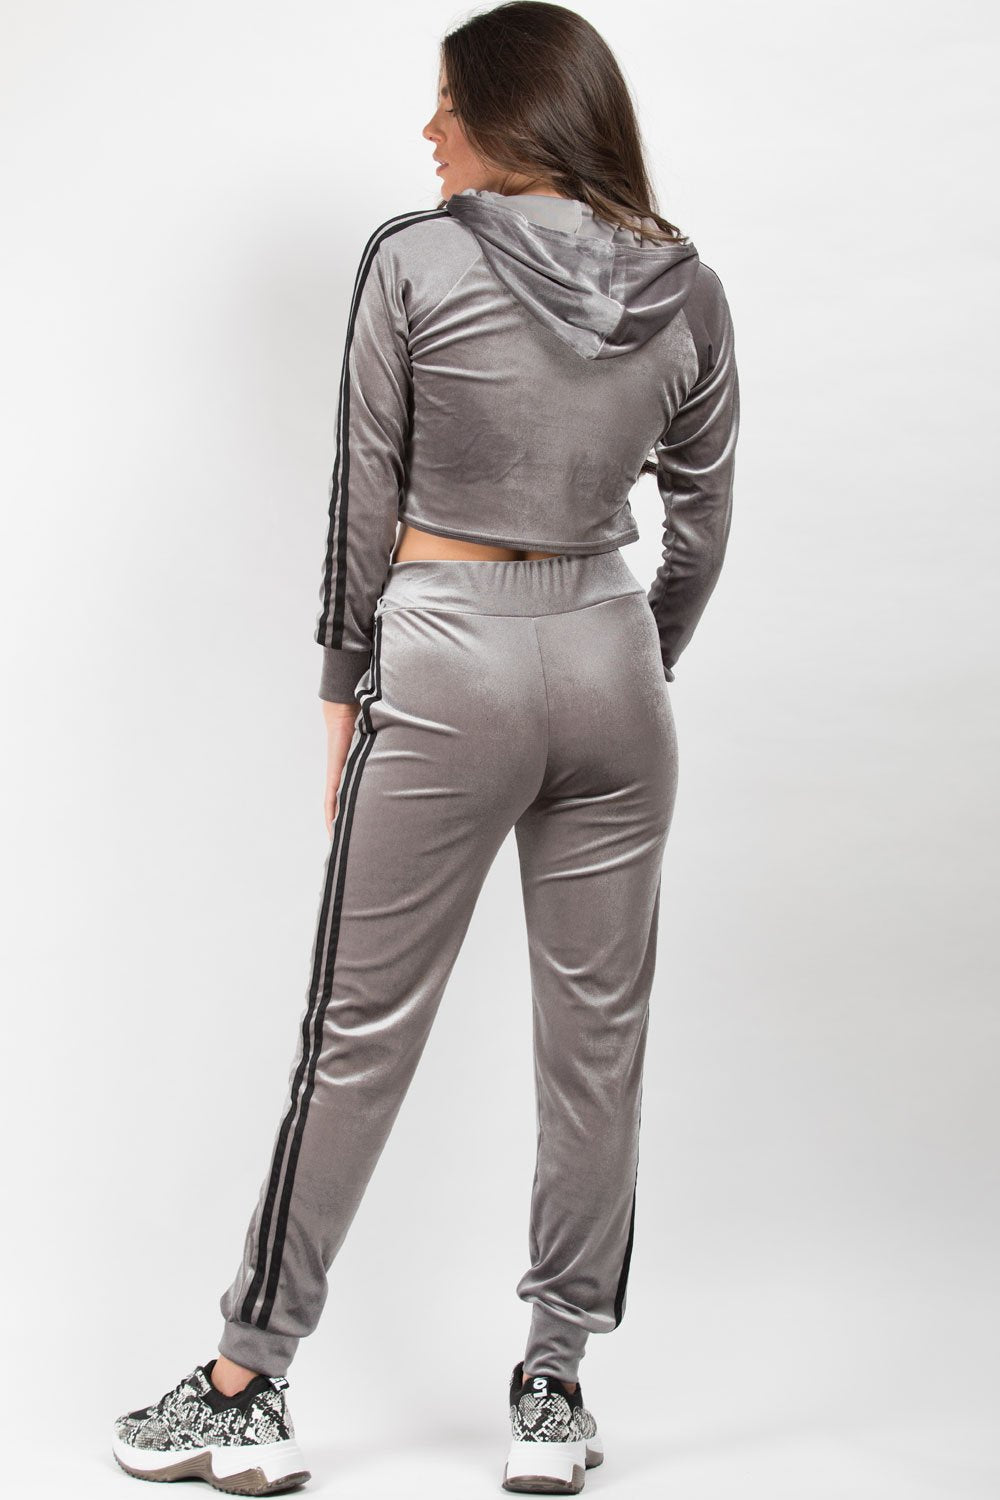 grey loungewear co ord set